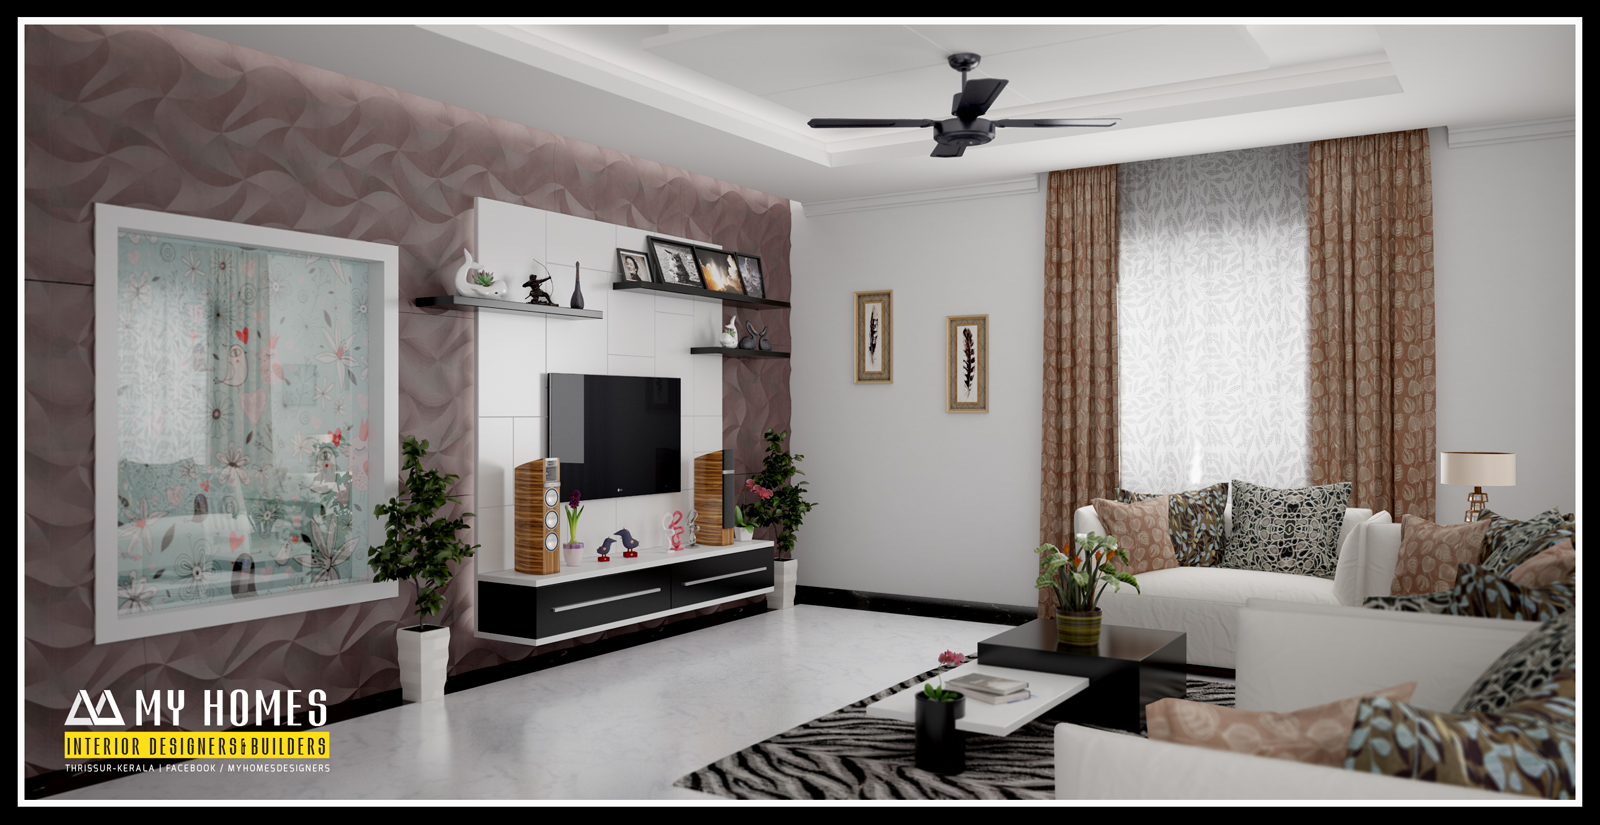 Kerala interior design ideas from designing company thrissur - Interior design home ...